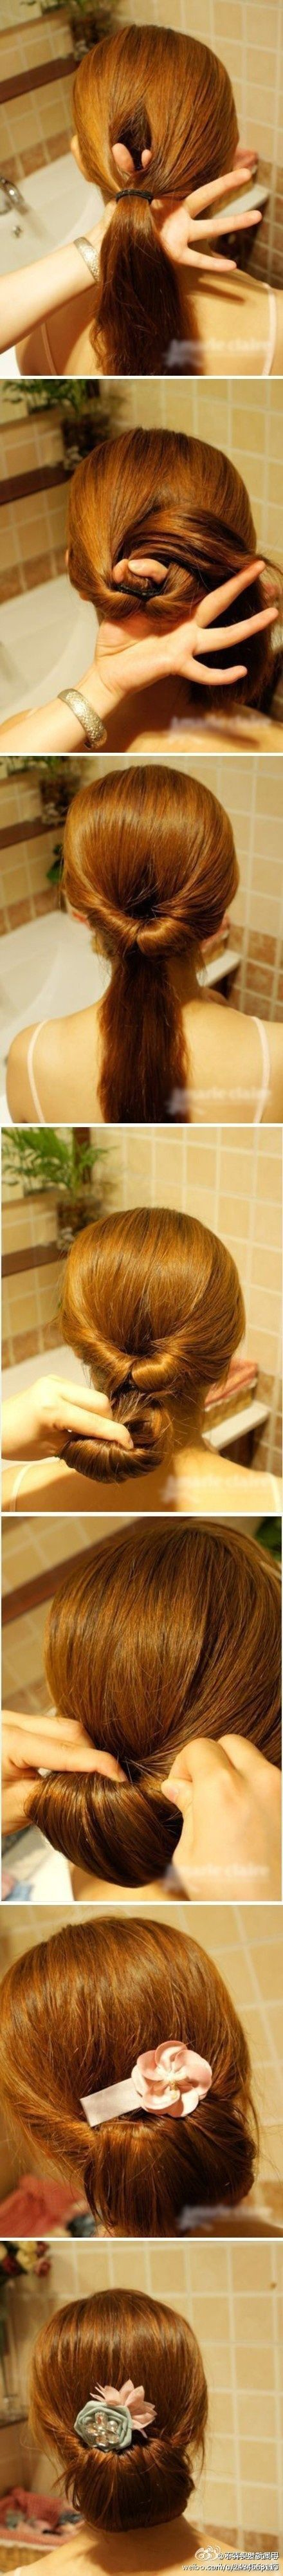 Love this hair! I've done it in less than five min! It looks great and is super easy! I do it if I'm too rushed in the mornings to do something complicated.